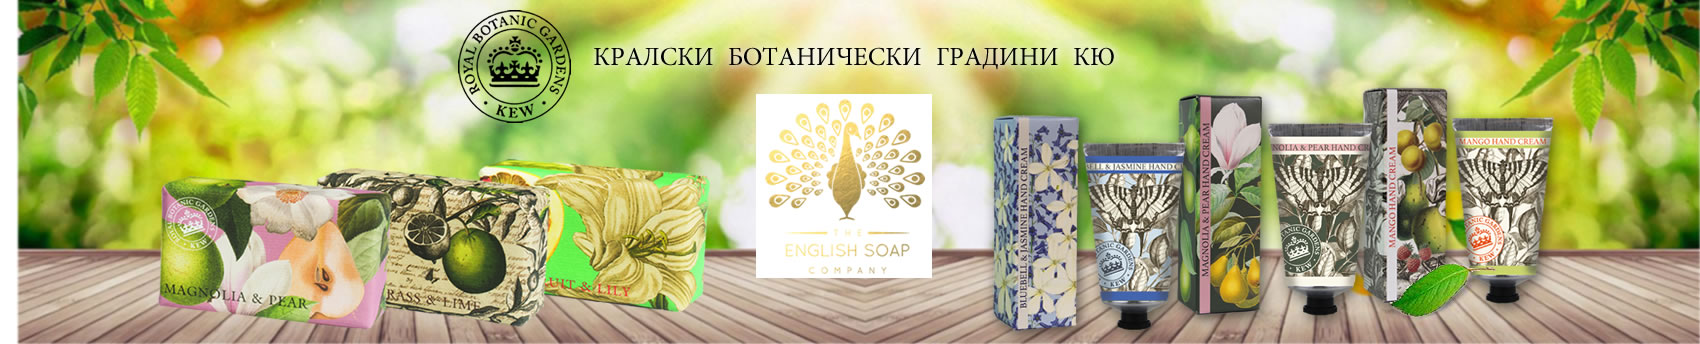 English Soap Company KEW